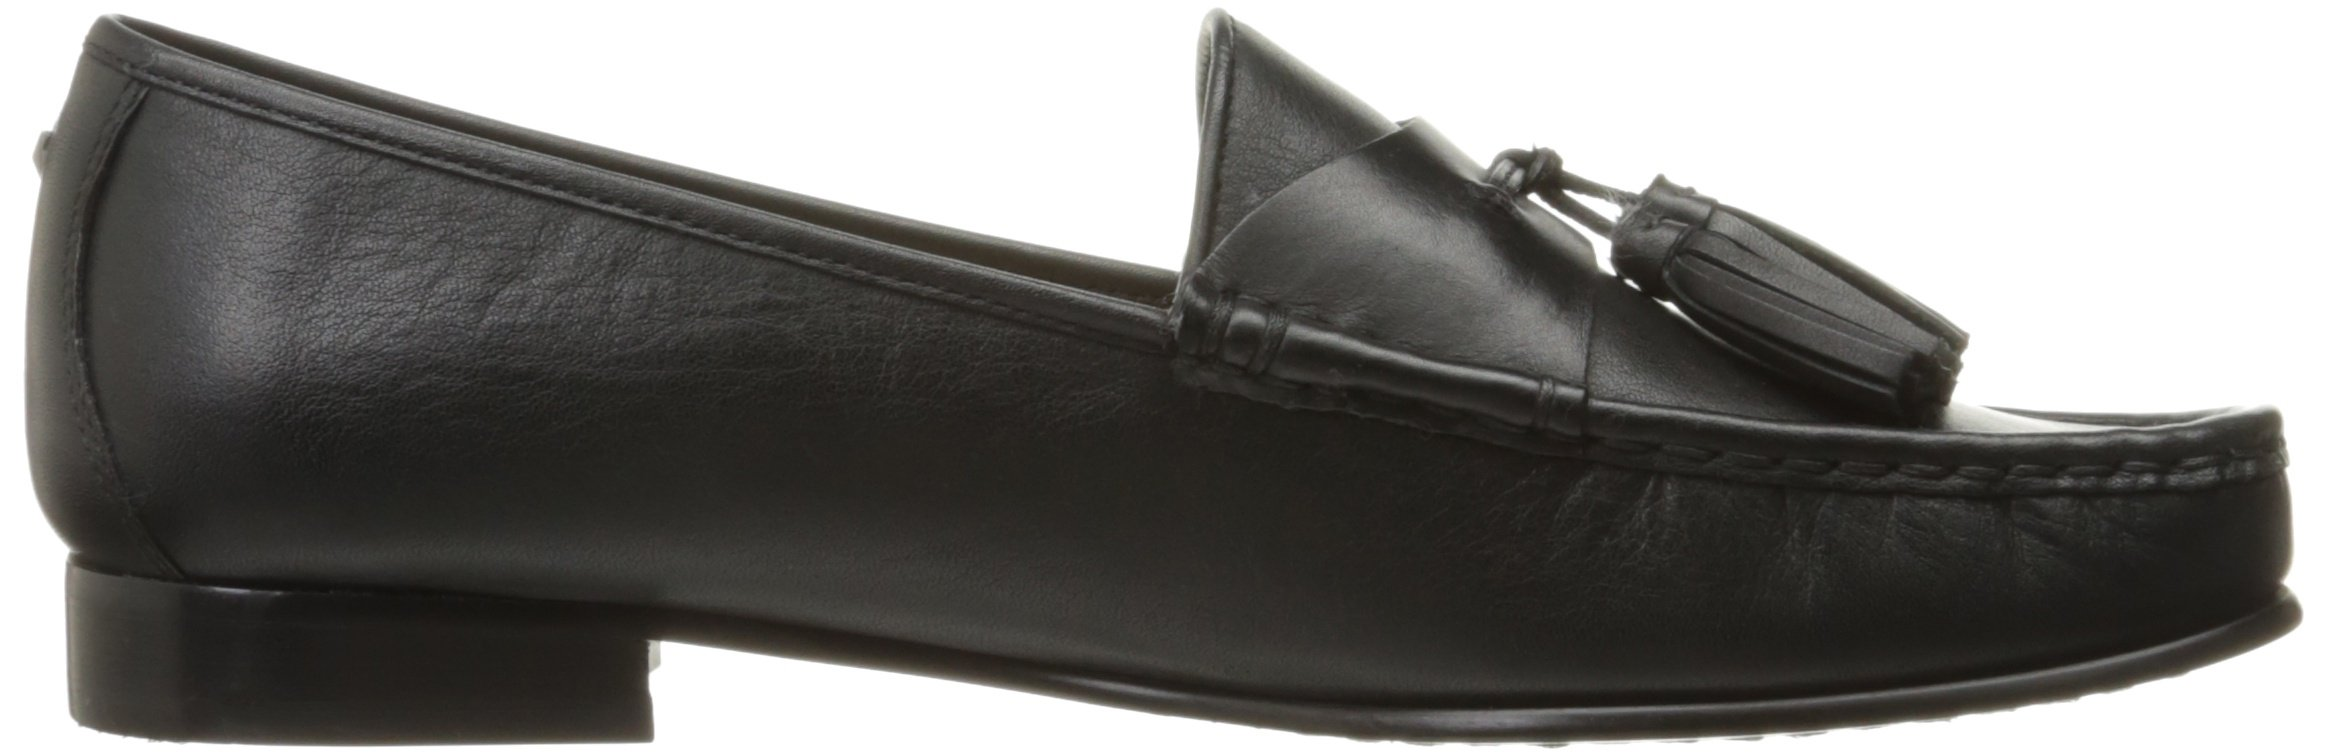 Sam Edelman Women's Therese Slip-On Loafer, Black, 7 M US by Sam Edelman (Image #7)